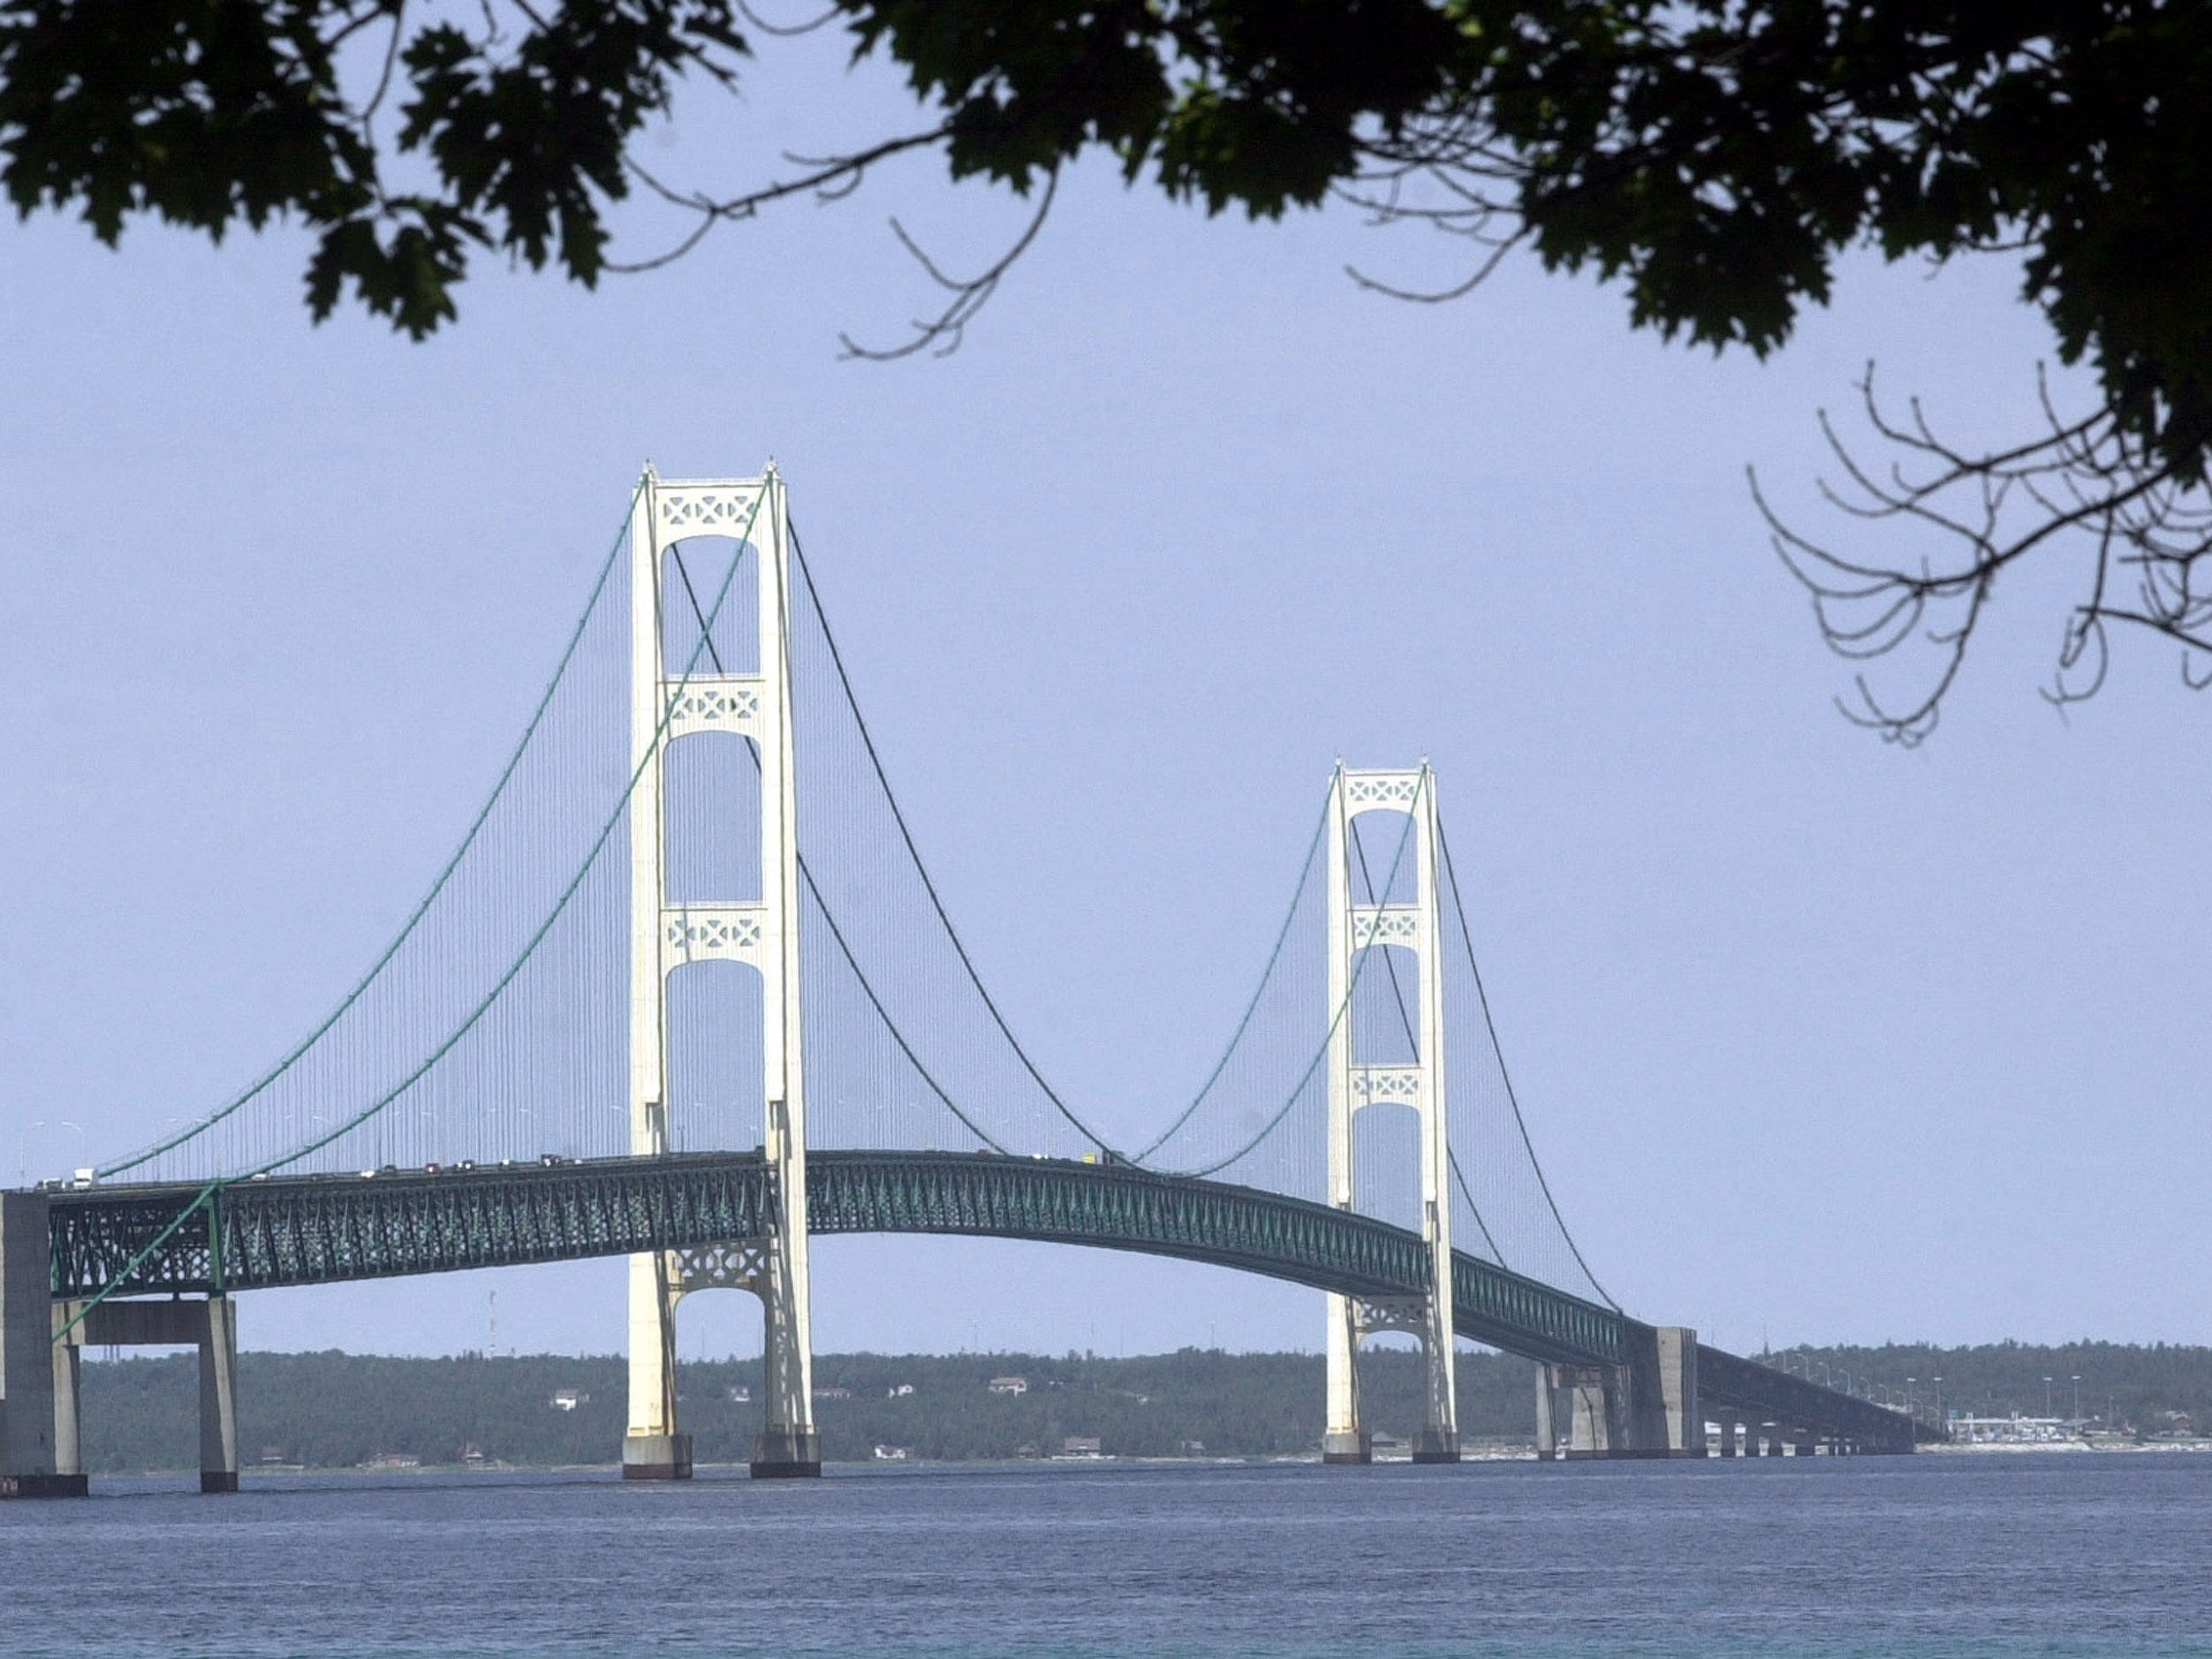 In this  July 19, 2002 file photo, the Mackinac Bridge is shown from Mackinaw City, Mich. The bridge connecting Michigan's two peninsulas is steeling itself for a national engineering accolade. The Mackinac Bridge is being designated Thursday, Aug. 12, 2010 as a National Historic Civil Engineering Landmark.